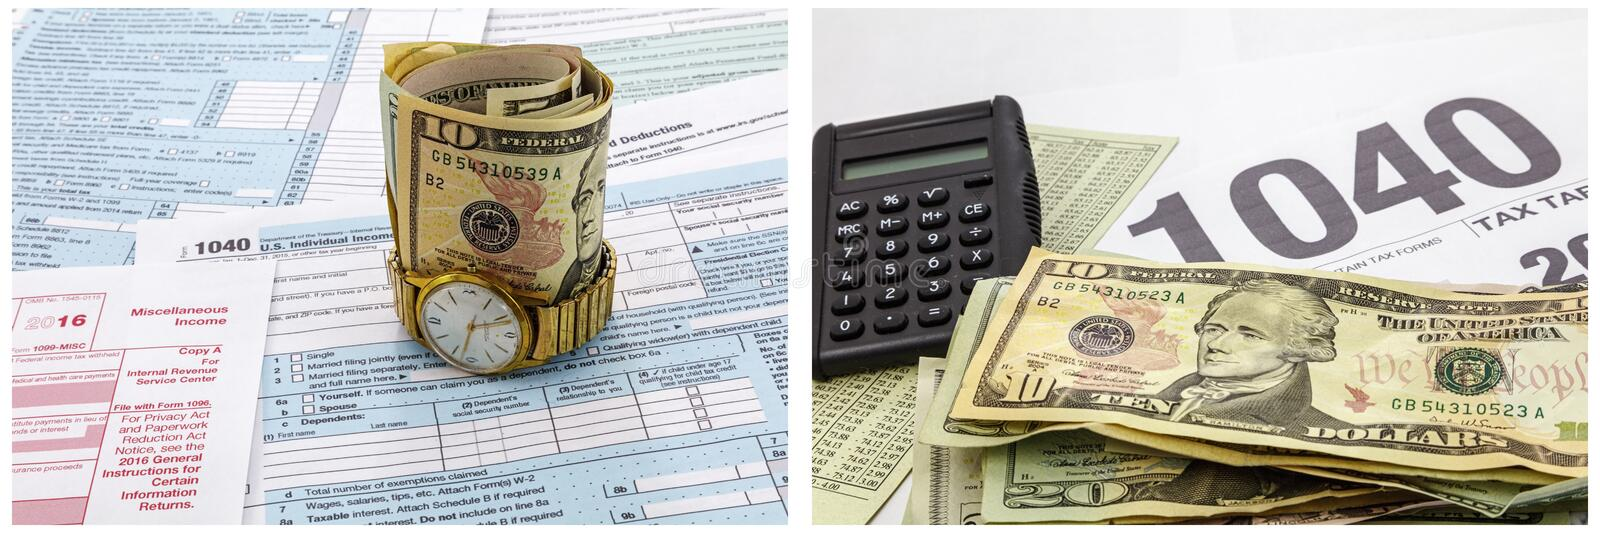 Irs Tax Forms Cash Clock Calculator Editorial Stock Photo Image Of